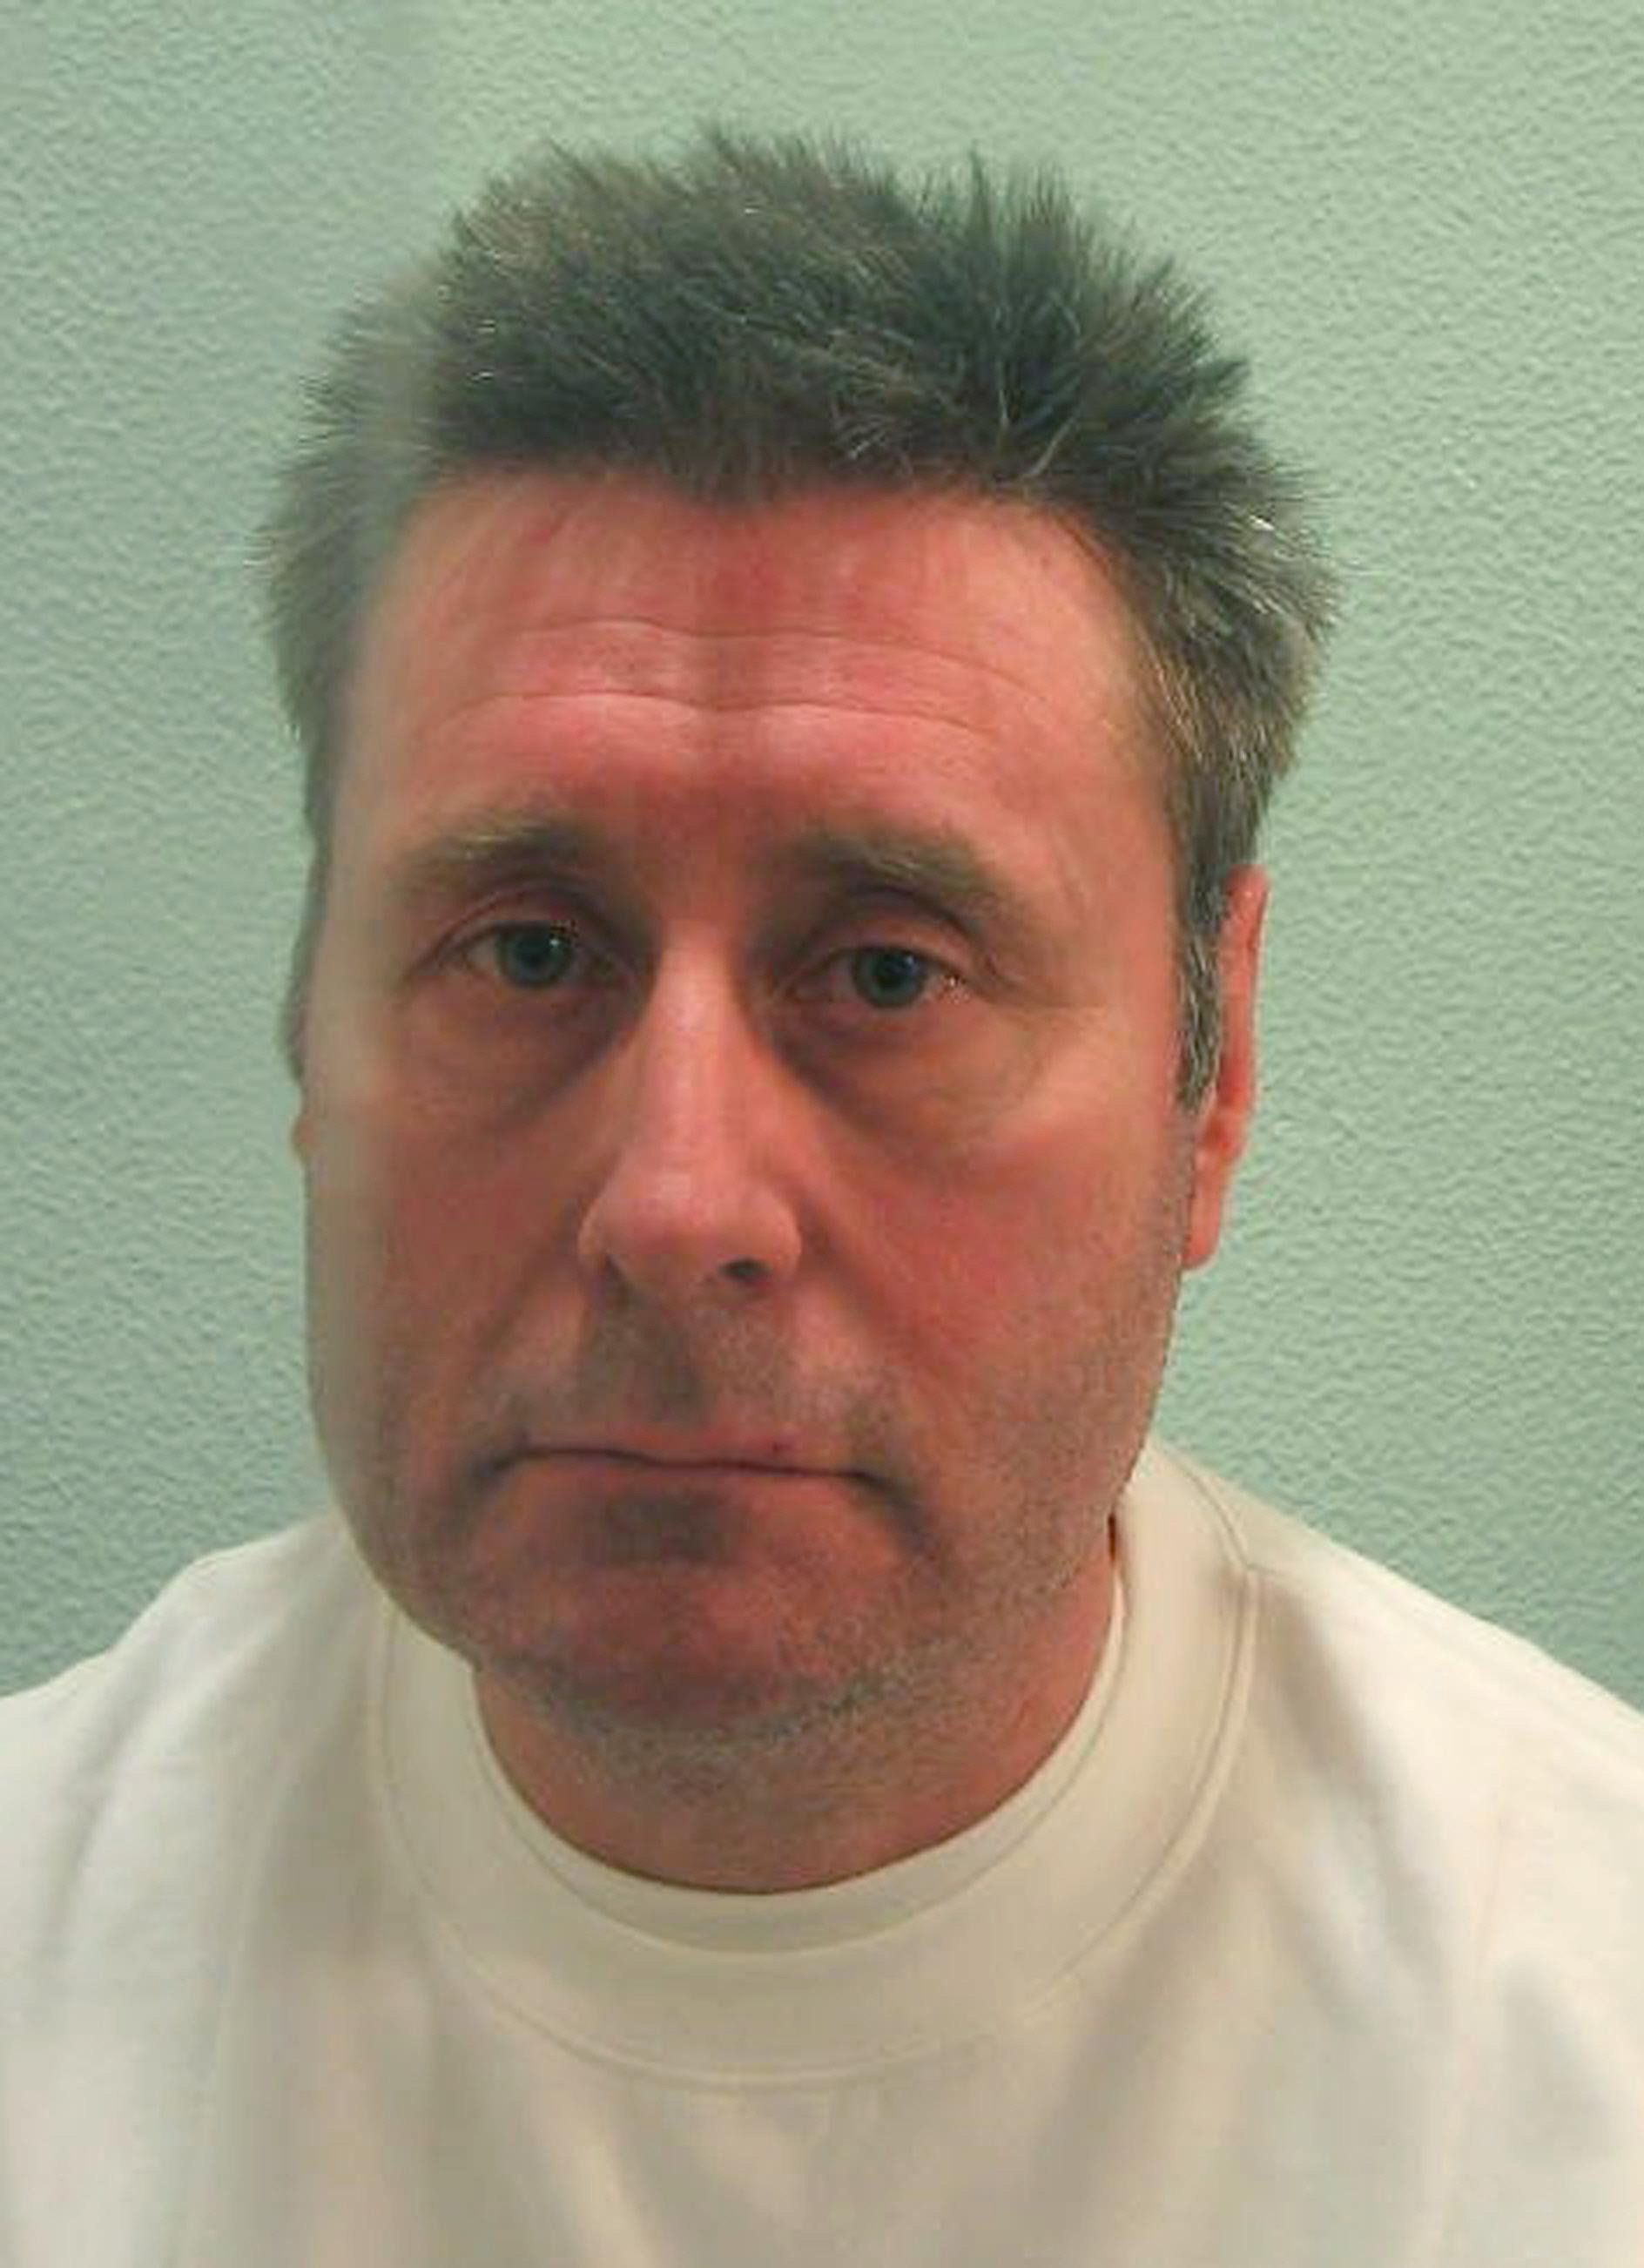 John Worboys Release: Government Shouldn't Interfere, Says Parole Board